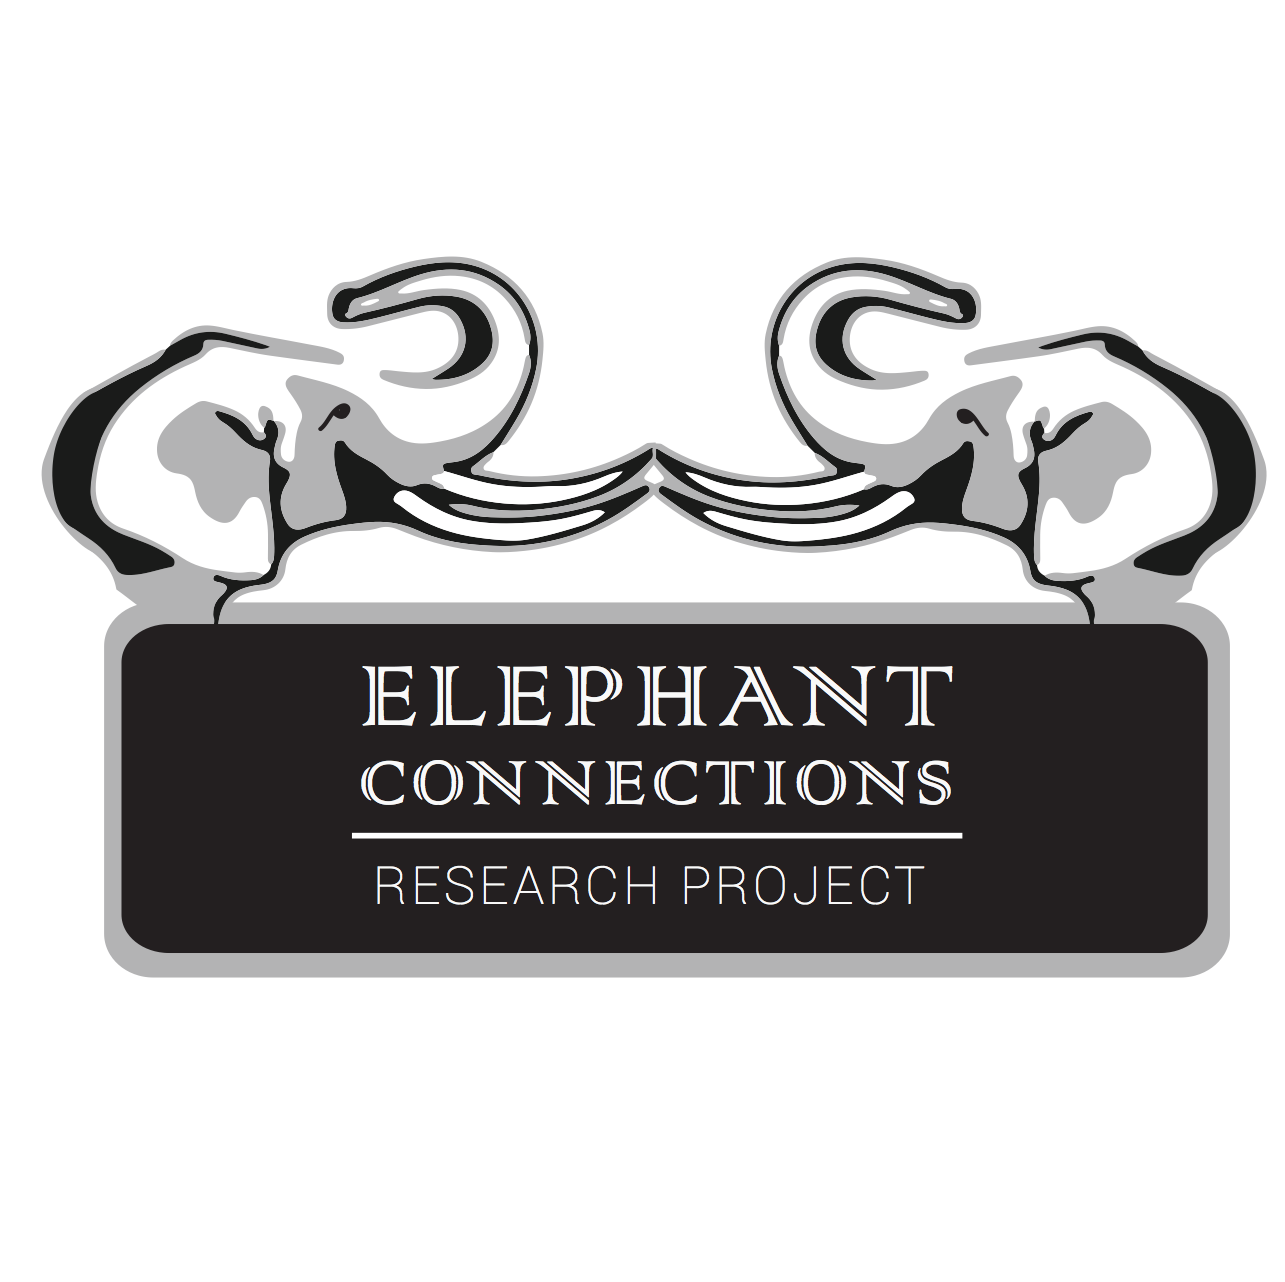 Elephant Connection Research Project logo